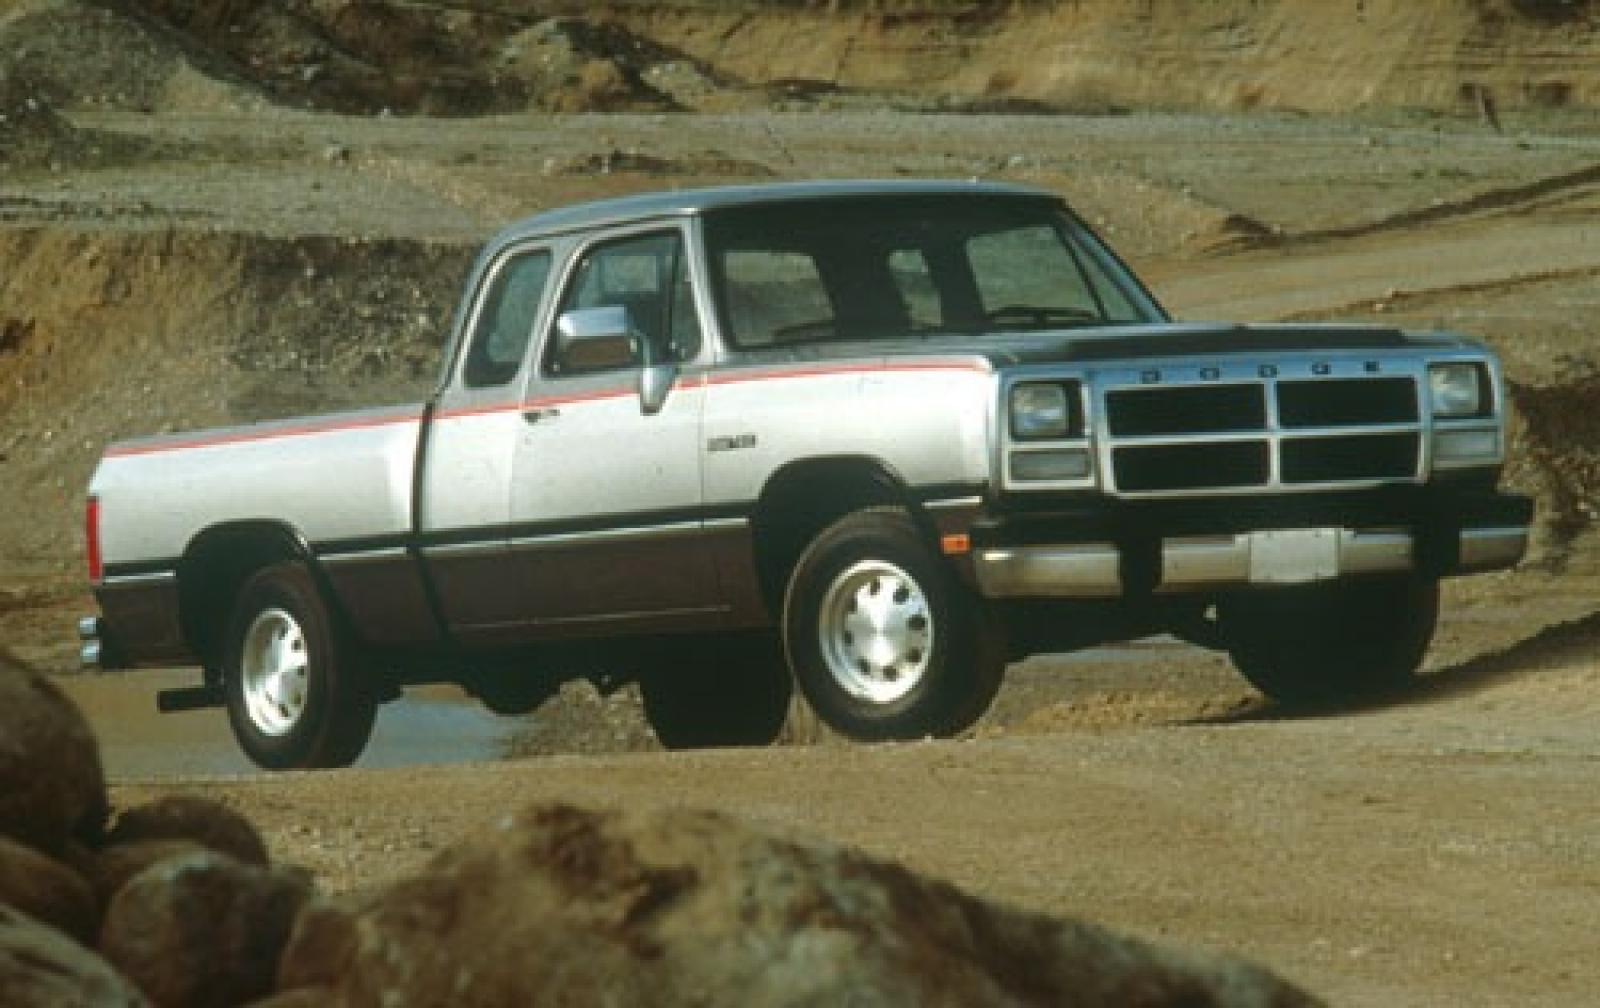 1993 dodge ram 150 information and photos zombiedrive. Black Bedroom Furniture Sets. Home Design Ideas